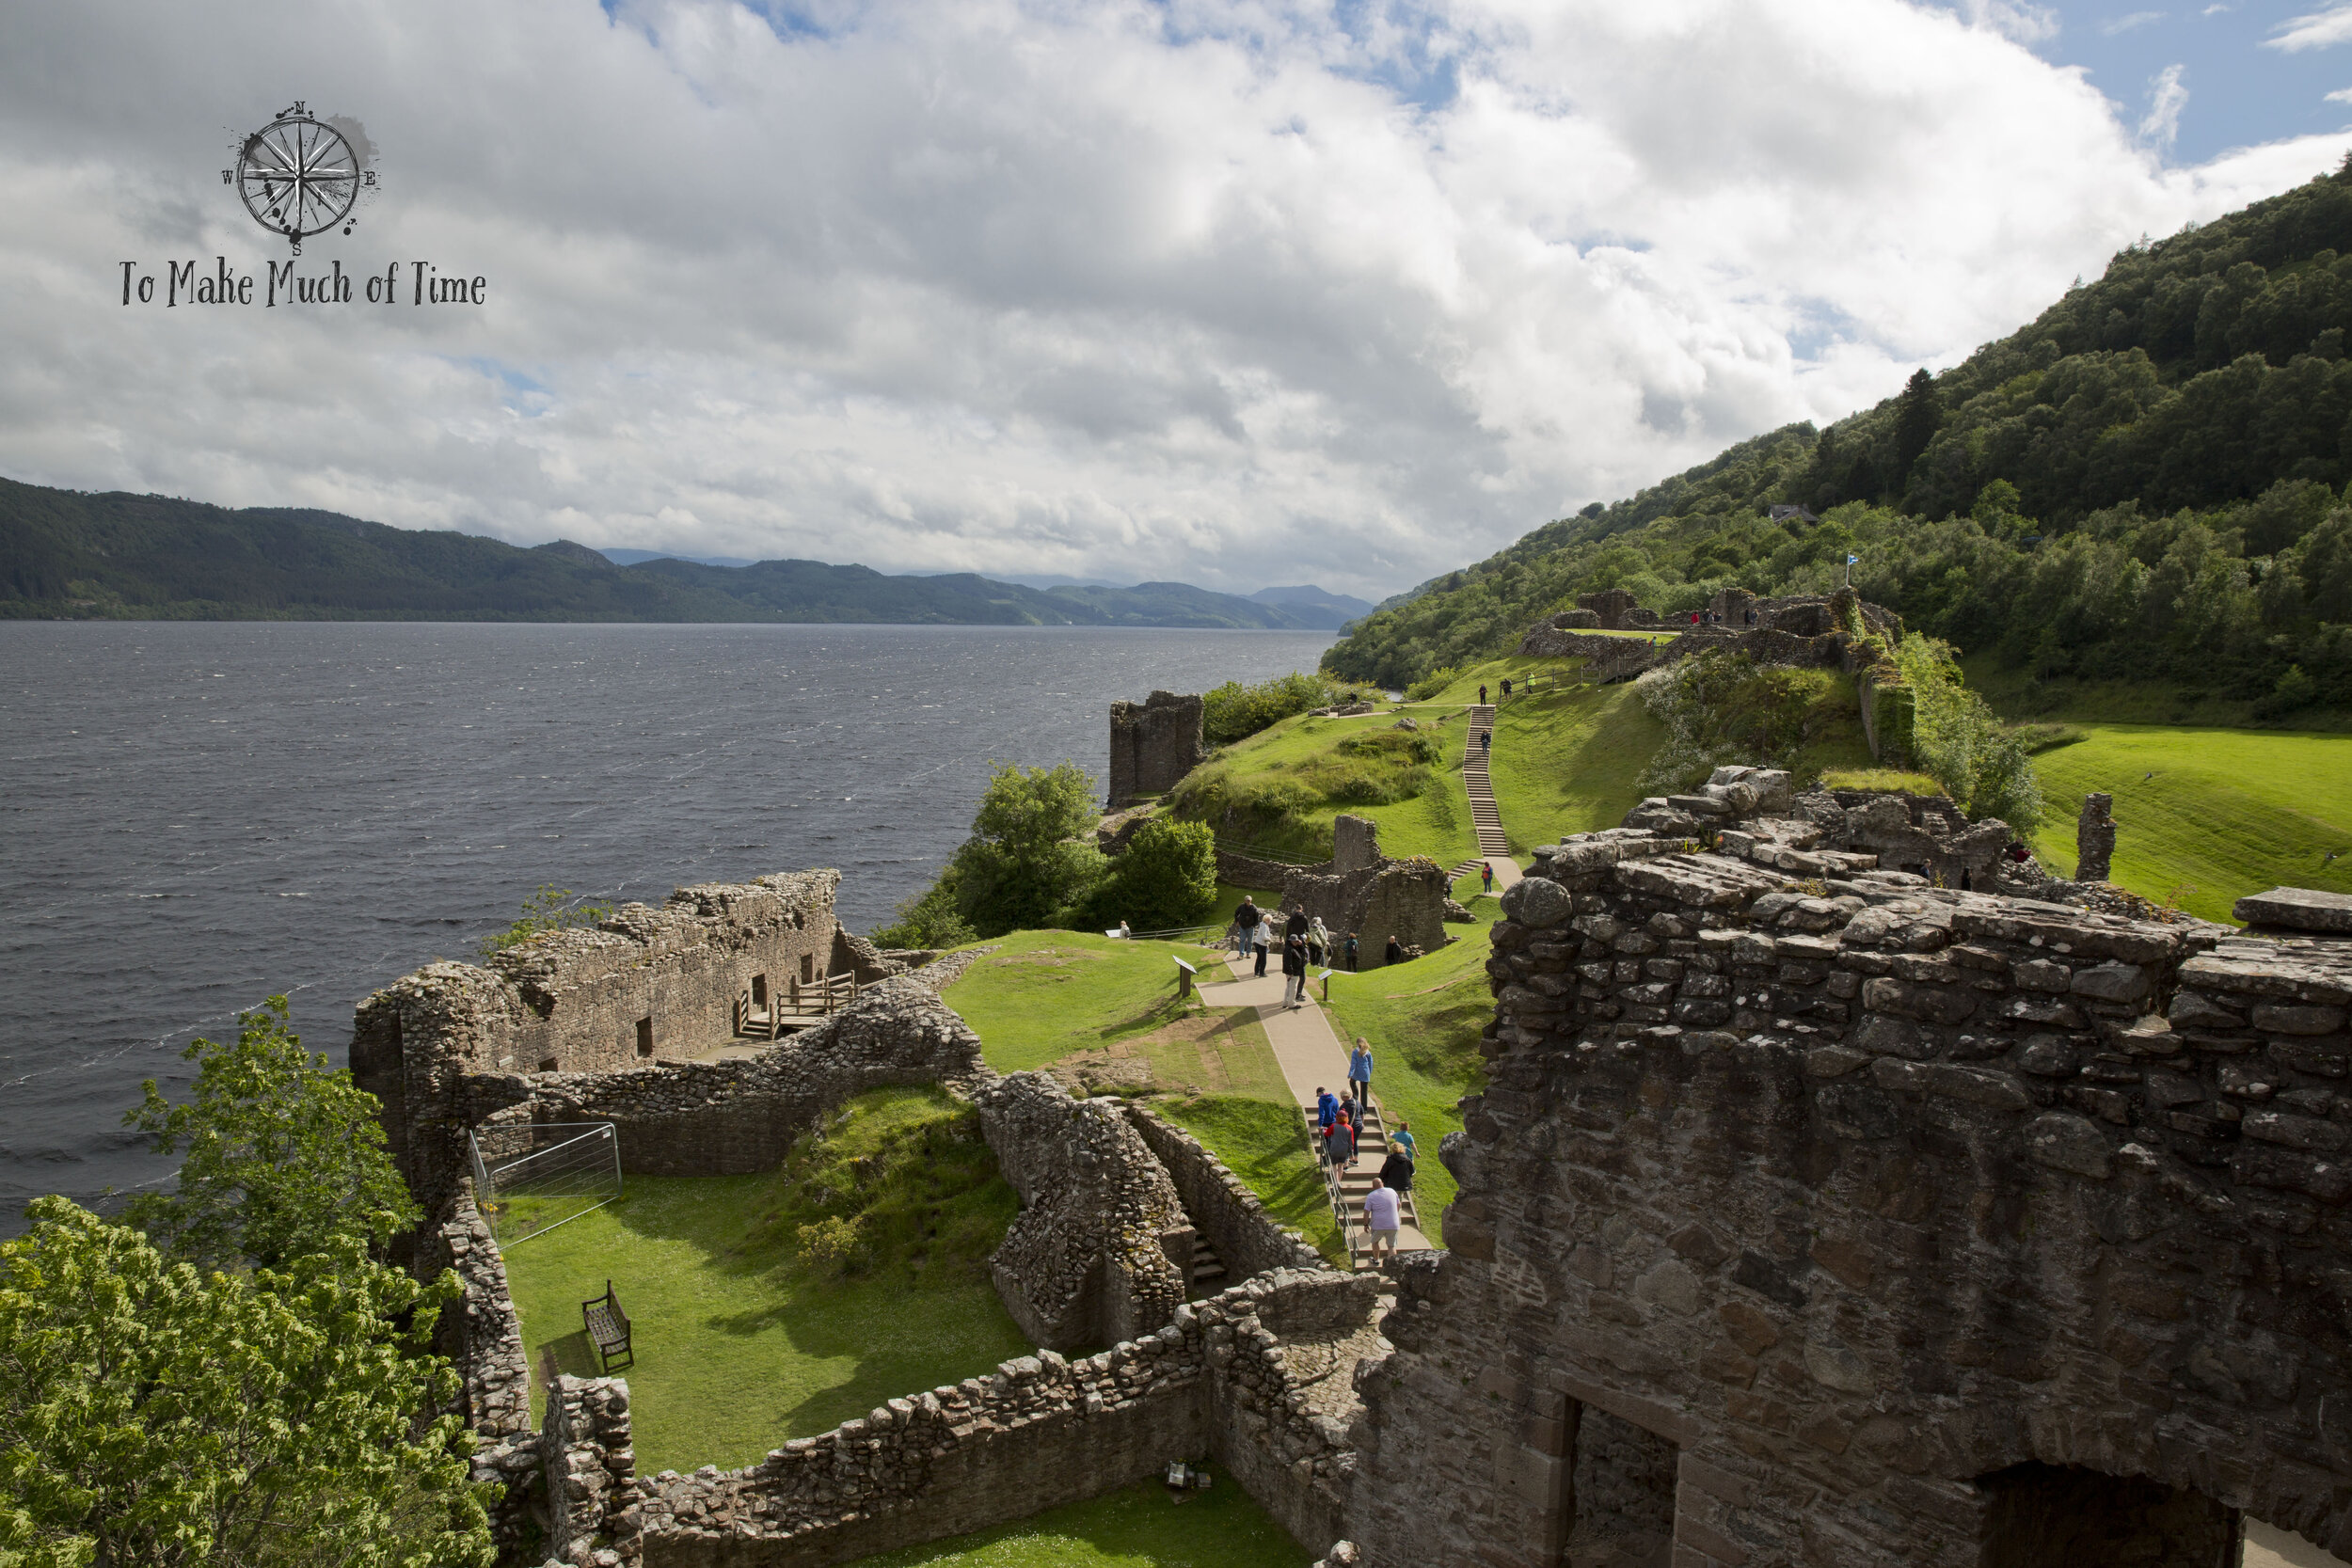 Scotland has more castles than you can possibly see in one trip. Many, such as Urquhart, seen here, are open to the public allowing you to stroll through the ruins and learn about the history of the region.